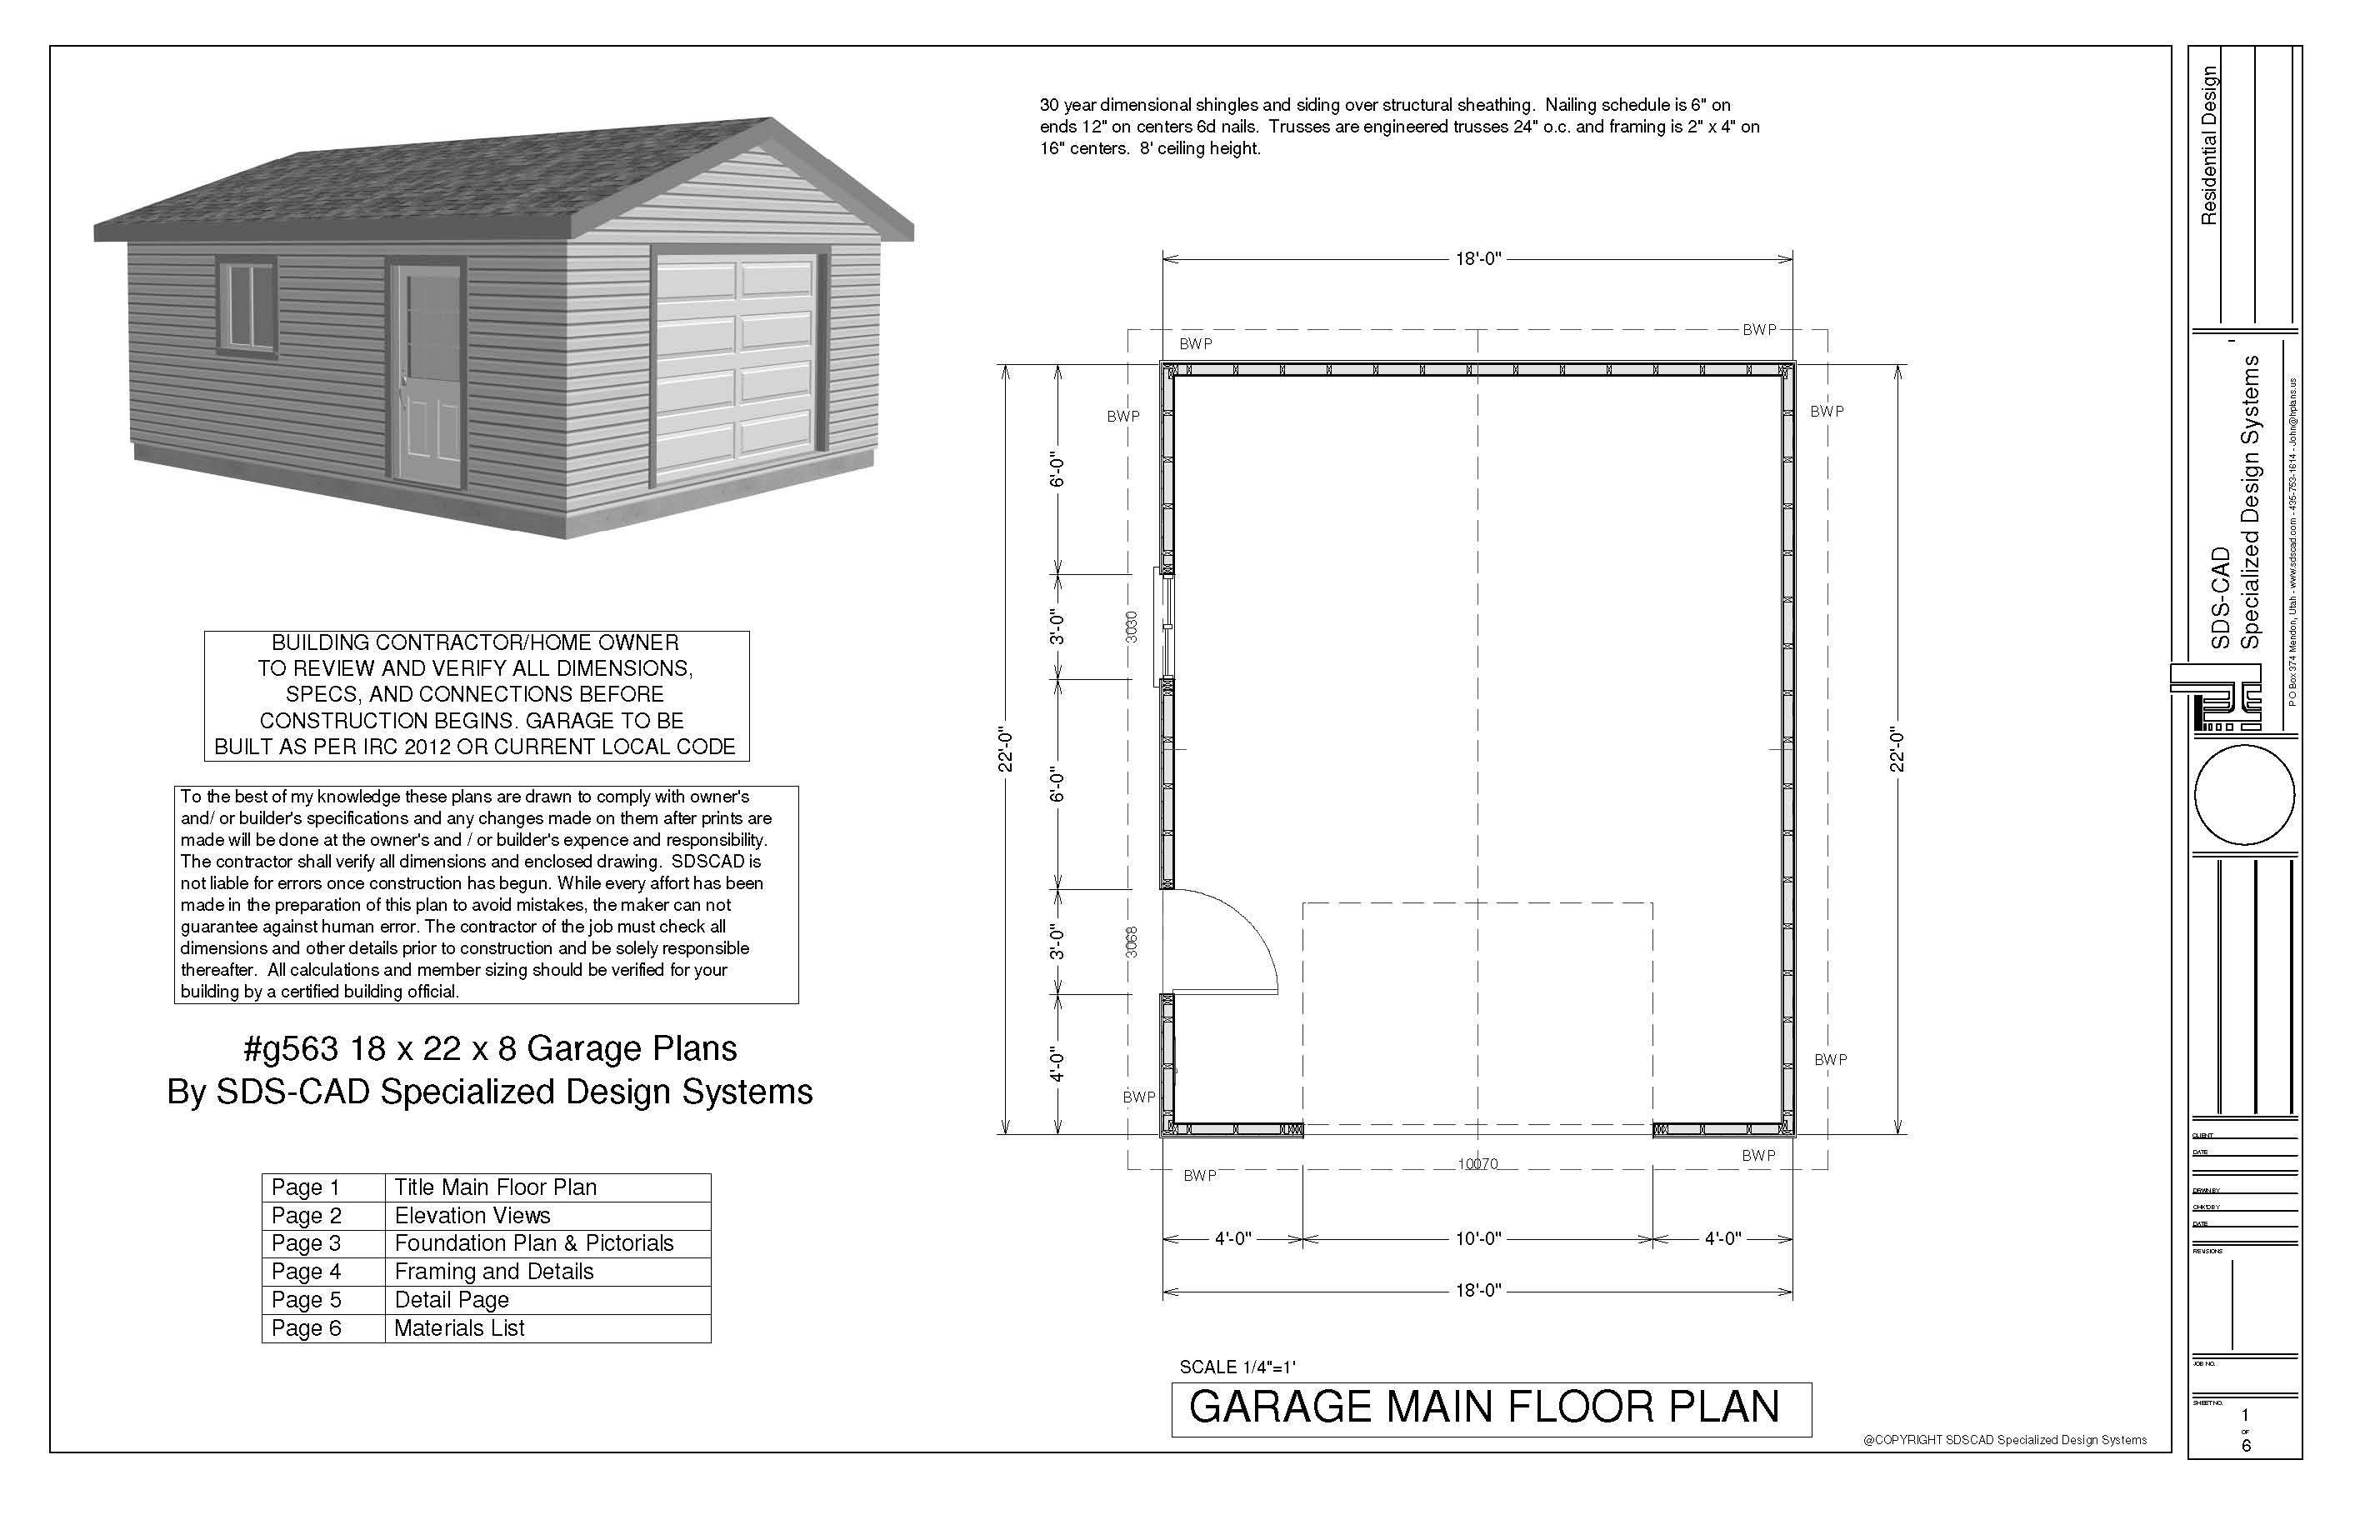 G563 18 x 22 x 8 garage plans in pdf and dwg sds plans Free garage blueprints